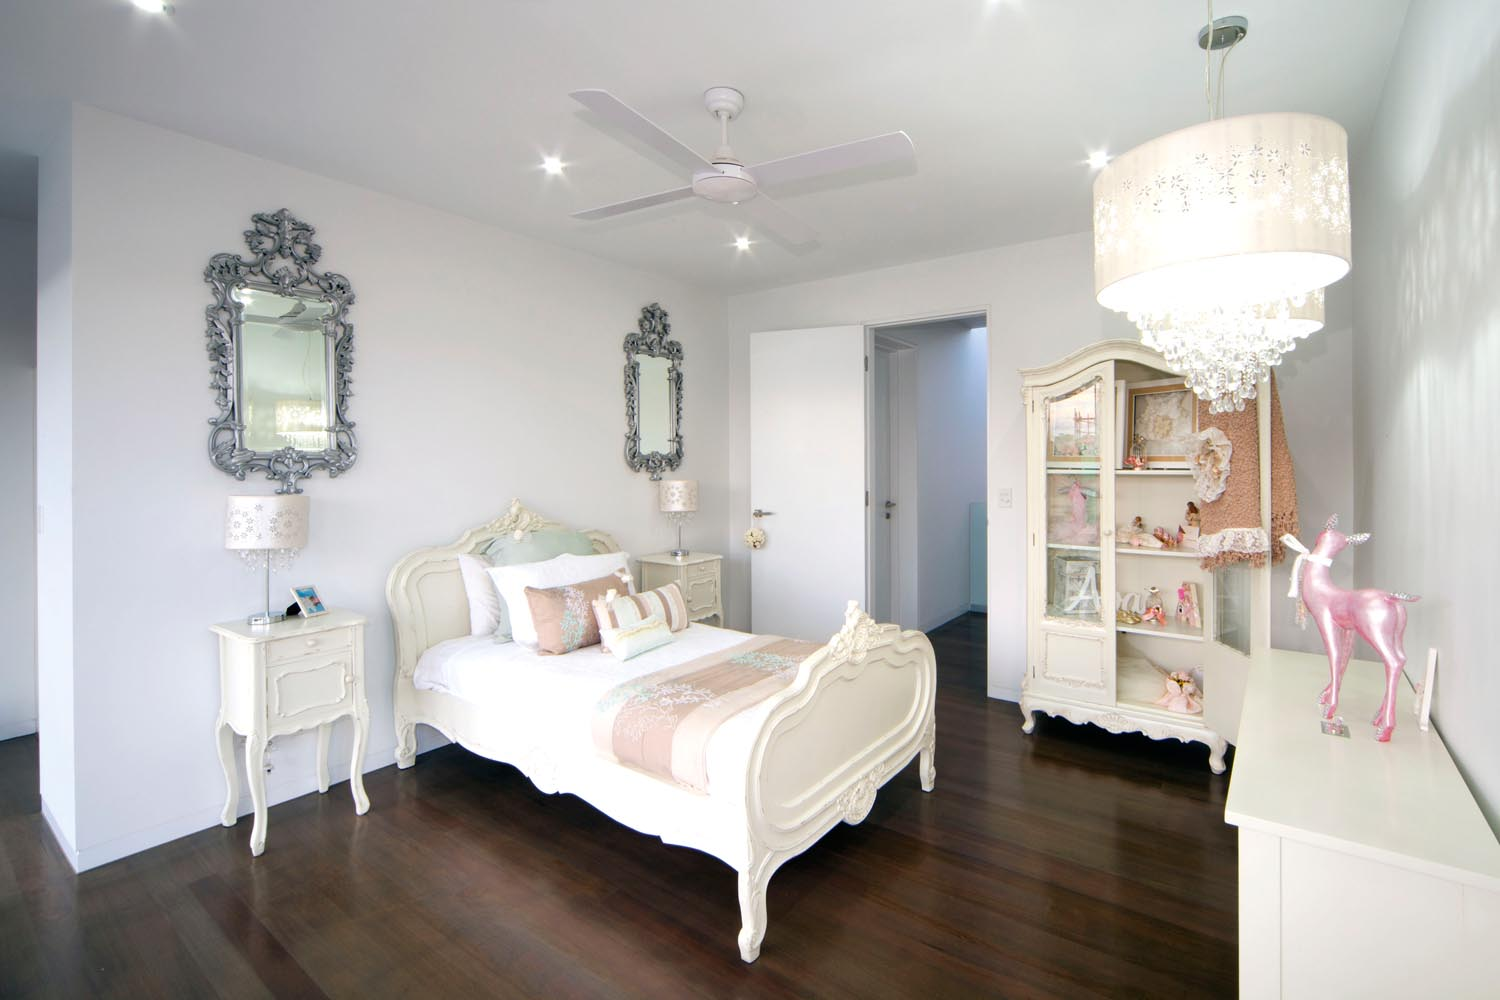 Hints of baby pink and creamy white make this bedroom pure elegance